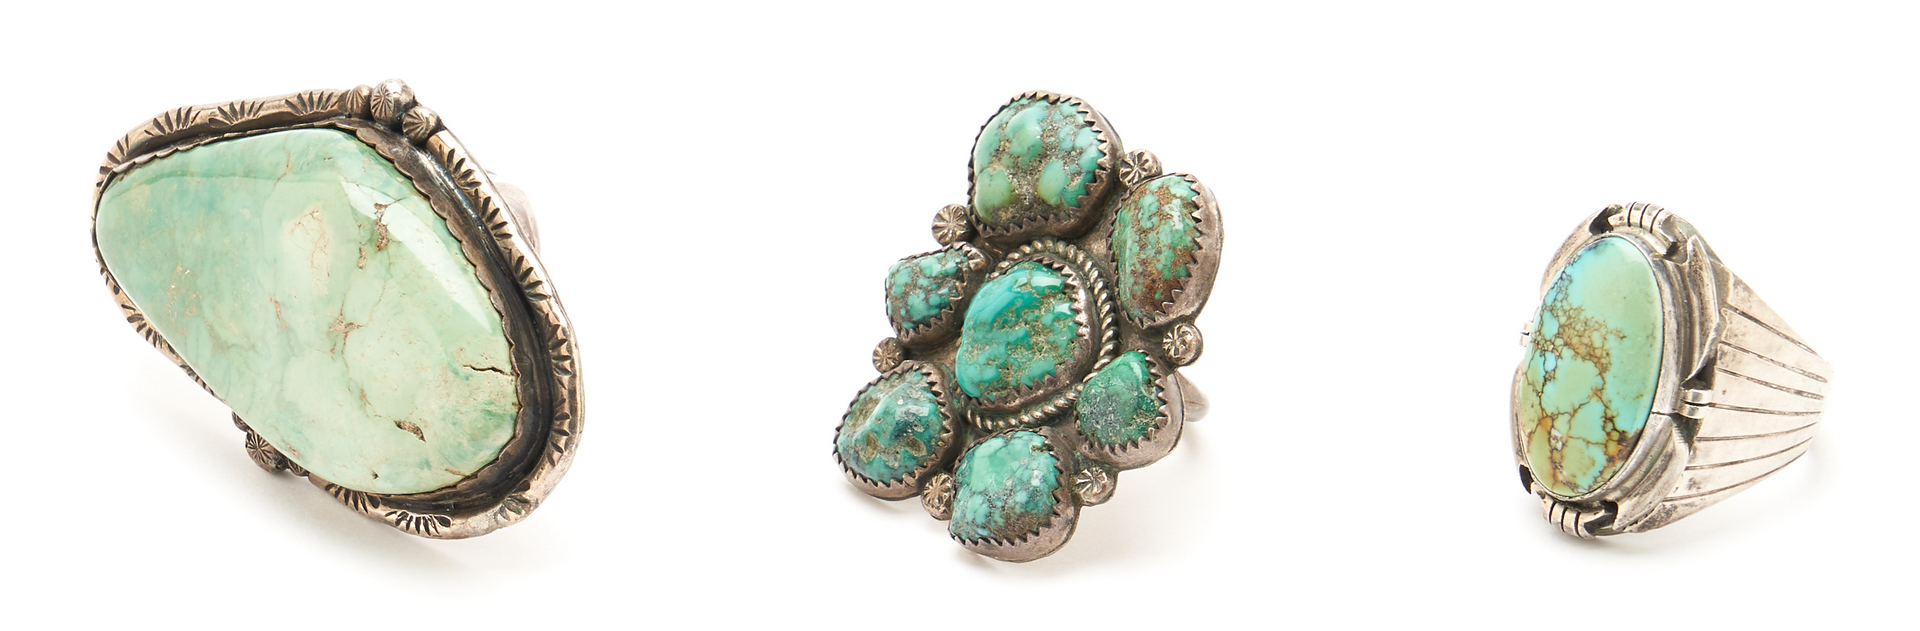 Lot 1095: 5 Native American Silver & Turquoise Jewelry Items